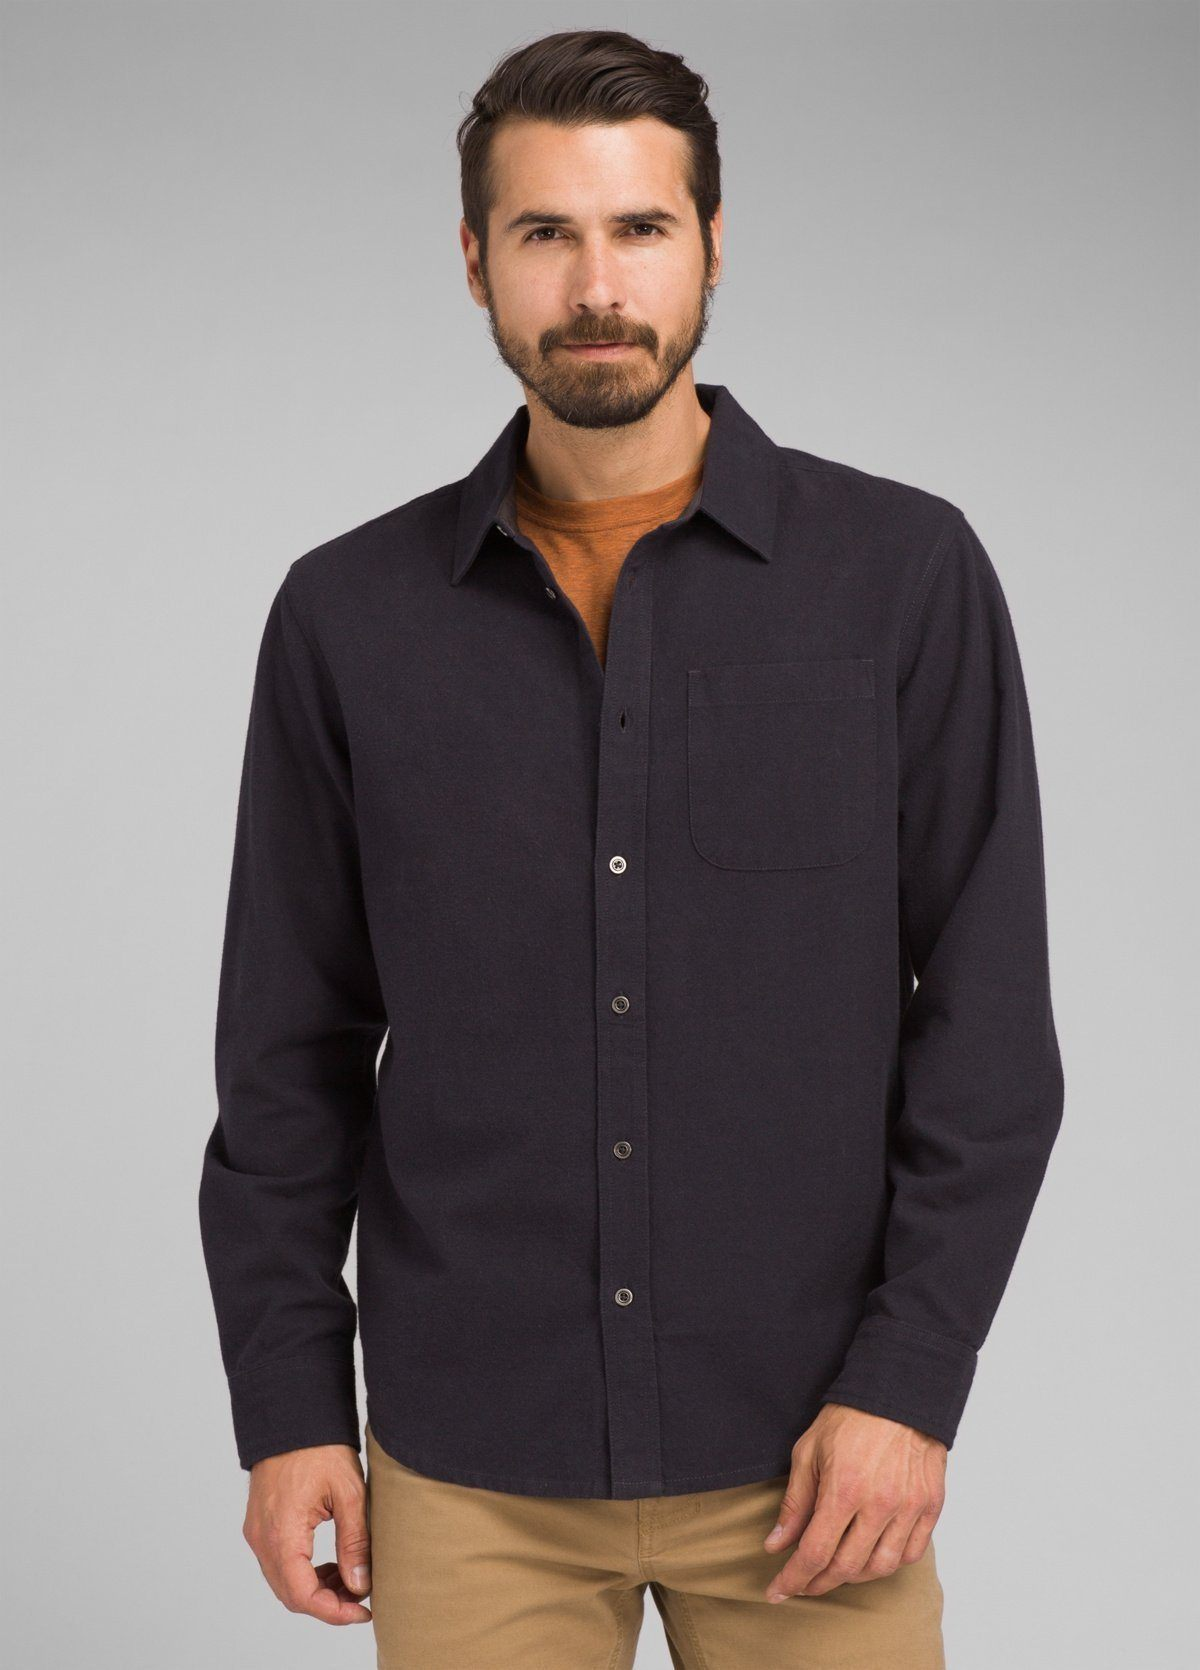 PrAna - Men's Woodman Midweight Flannel - Organic Cotton - Weekendbee - sustainable sportswear